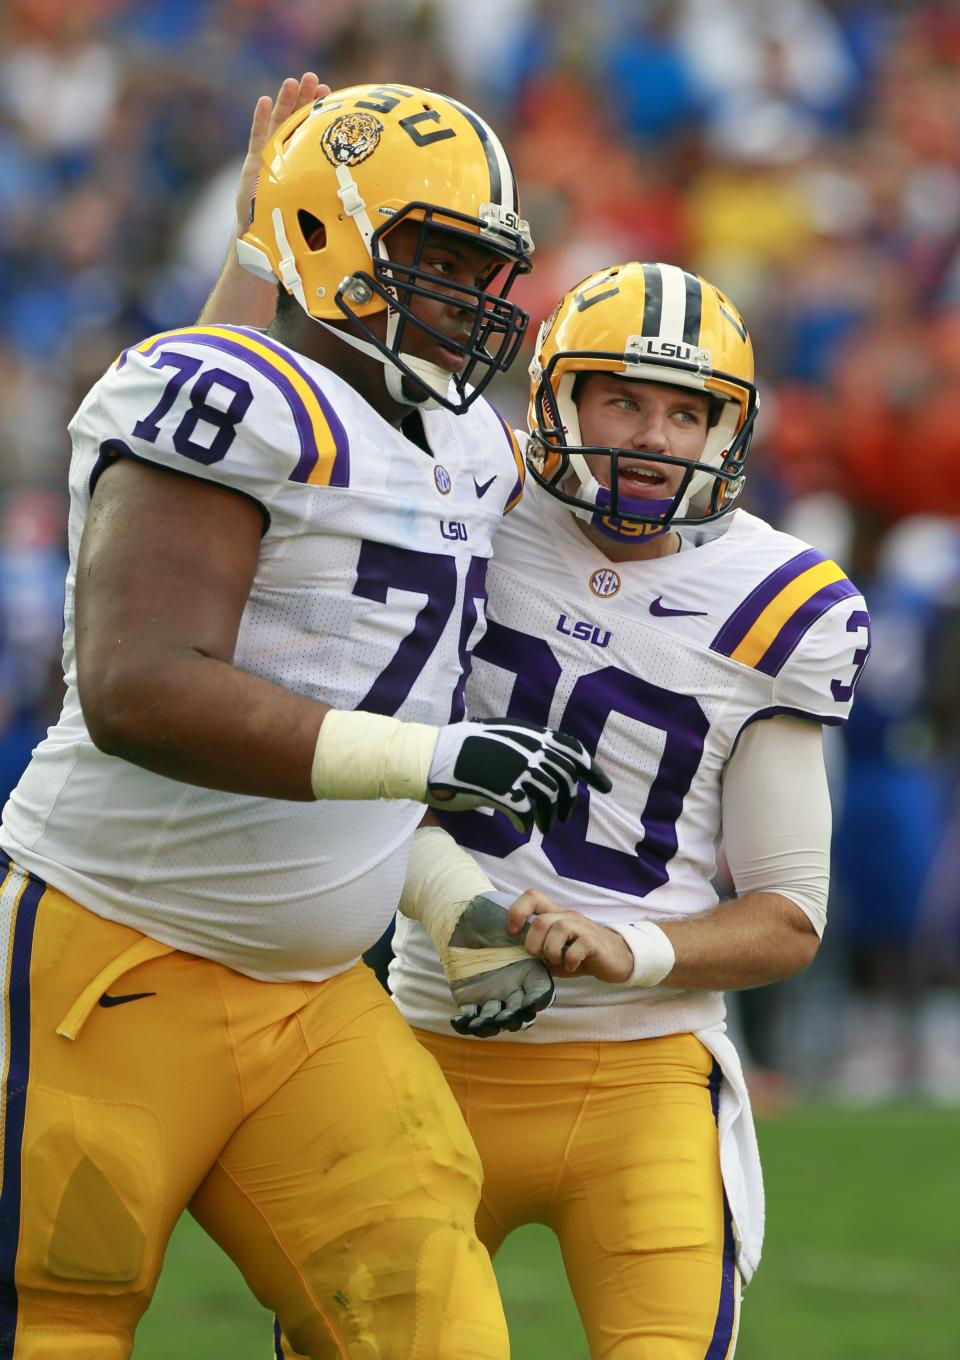 LSU place kicker Drew Alleman, right, pats offensive tackle Vadal Alexander (78) on the helmet after Alleman kicked a 21-yard field goal against Florida during the first half of an NCAA college football game, Saturday, Oct. 6, 2012, in Gainesville, Fla. (AP Photo/John Raoux)